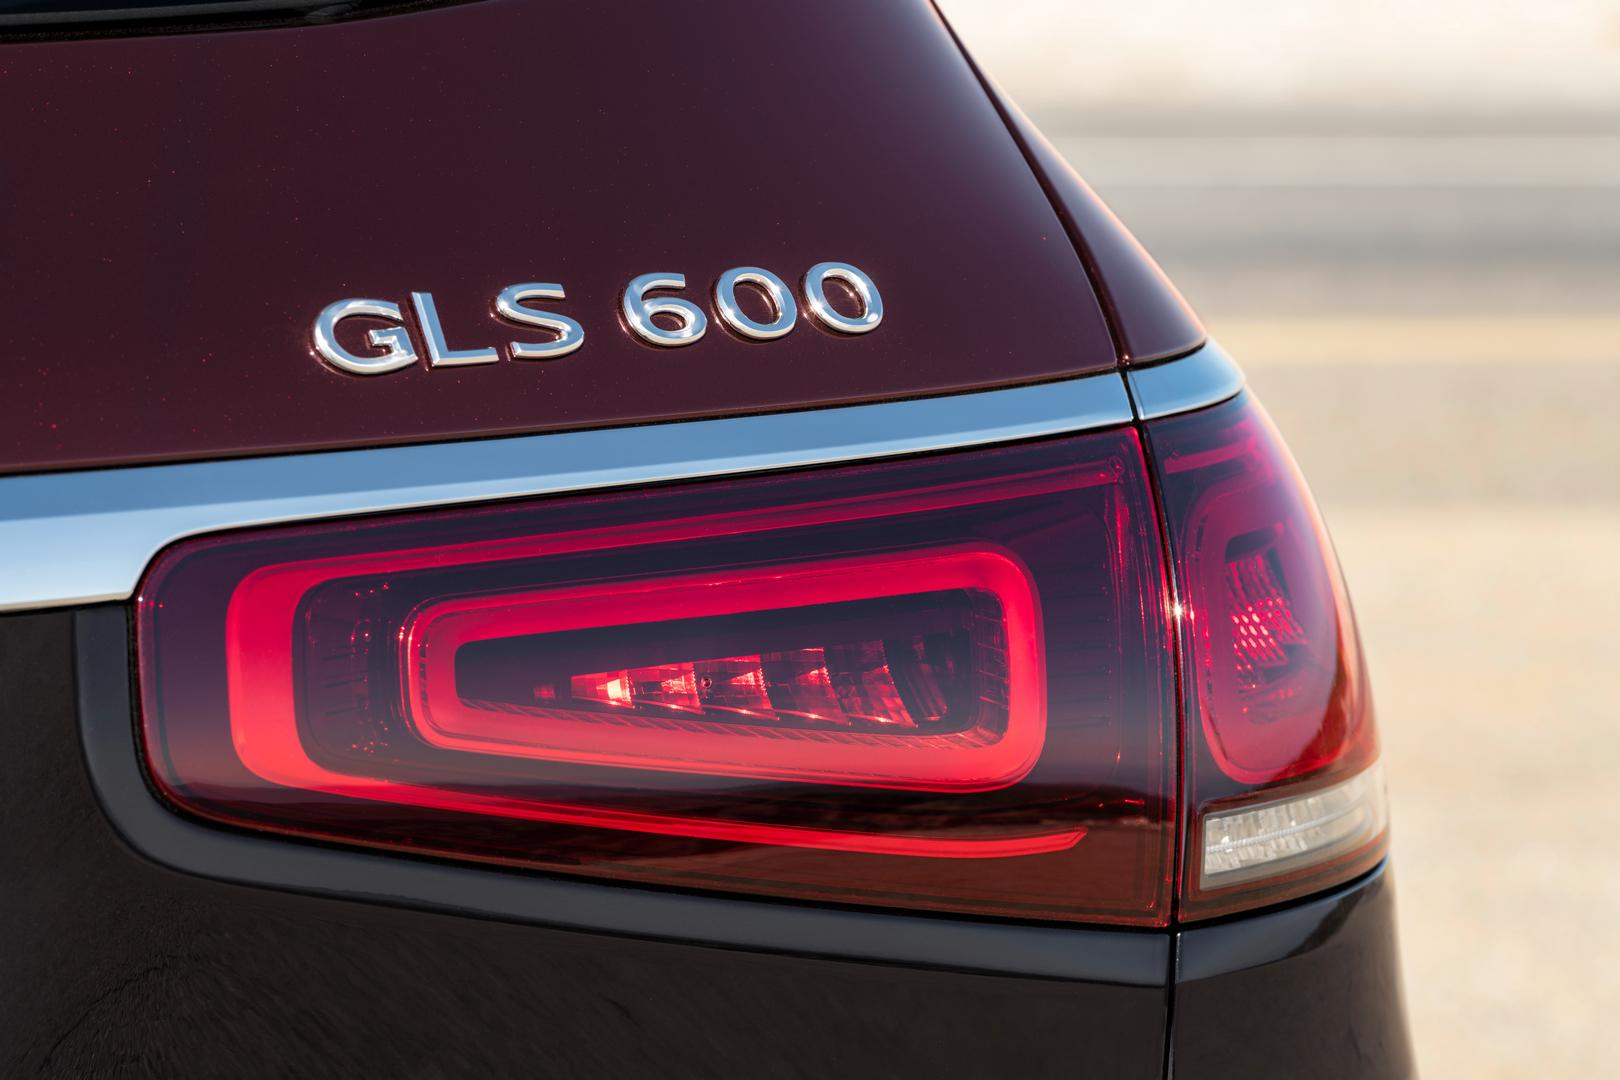 GLS 600 Badge